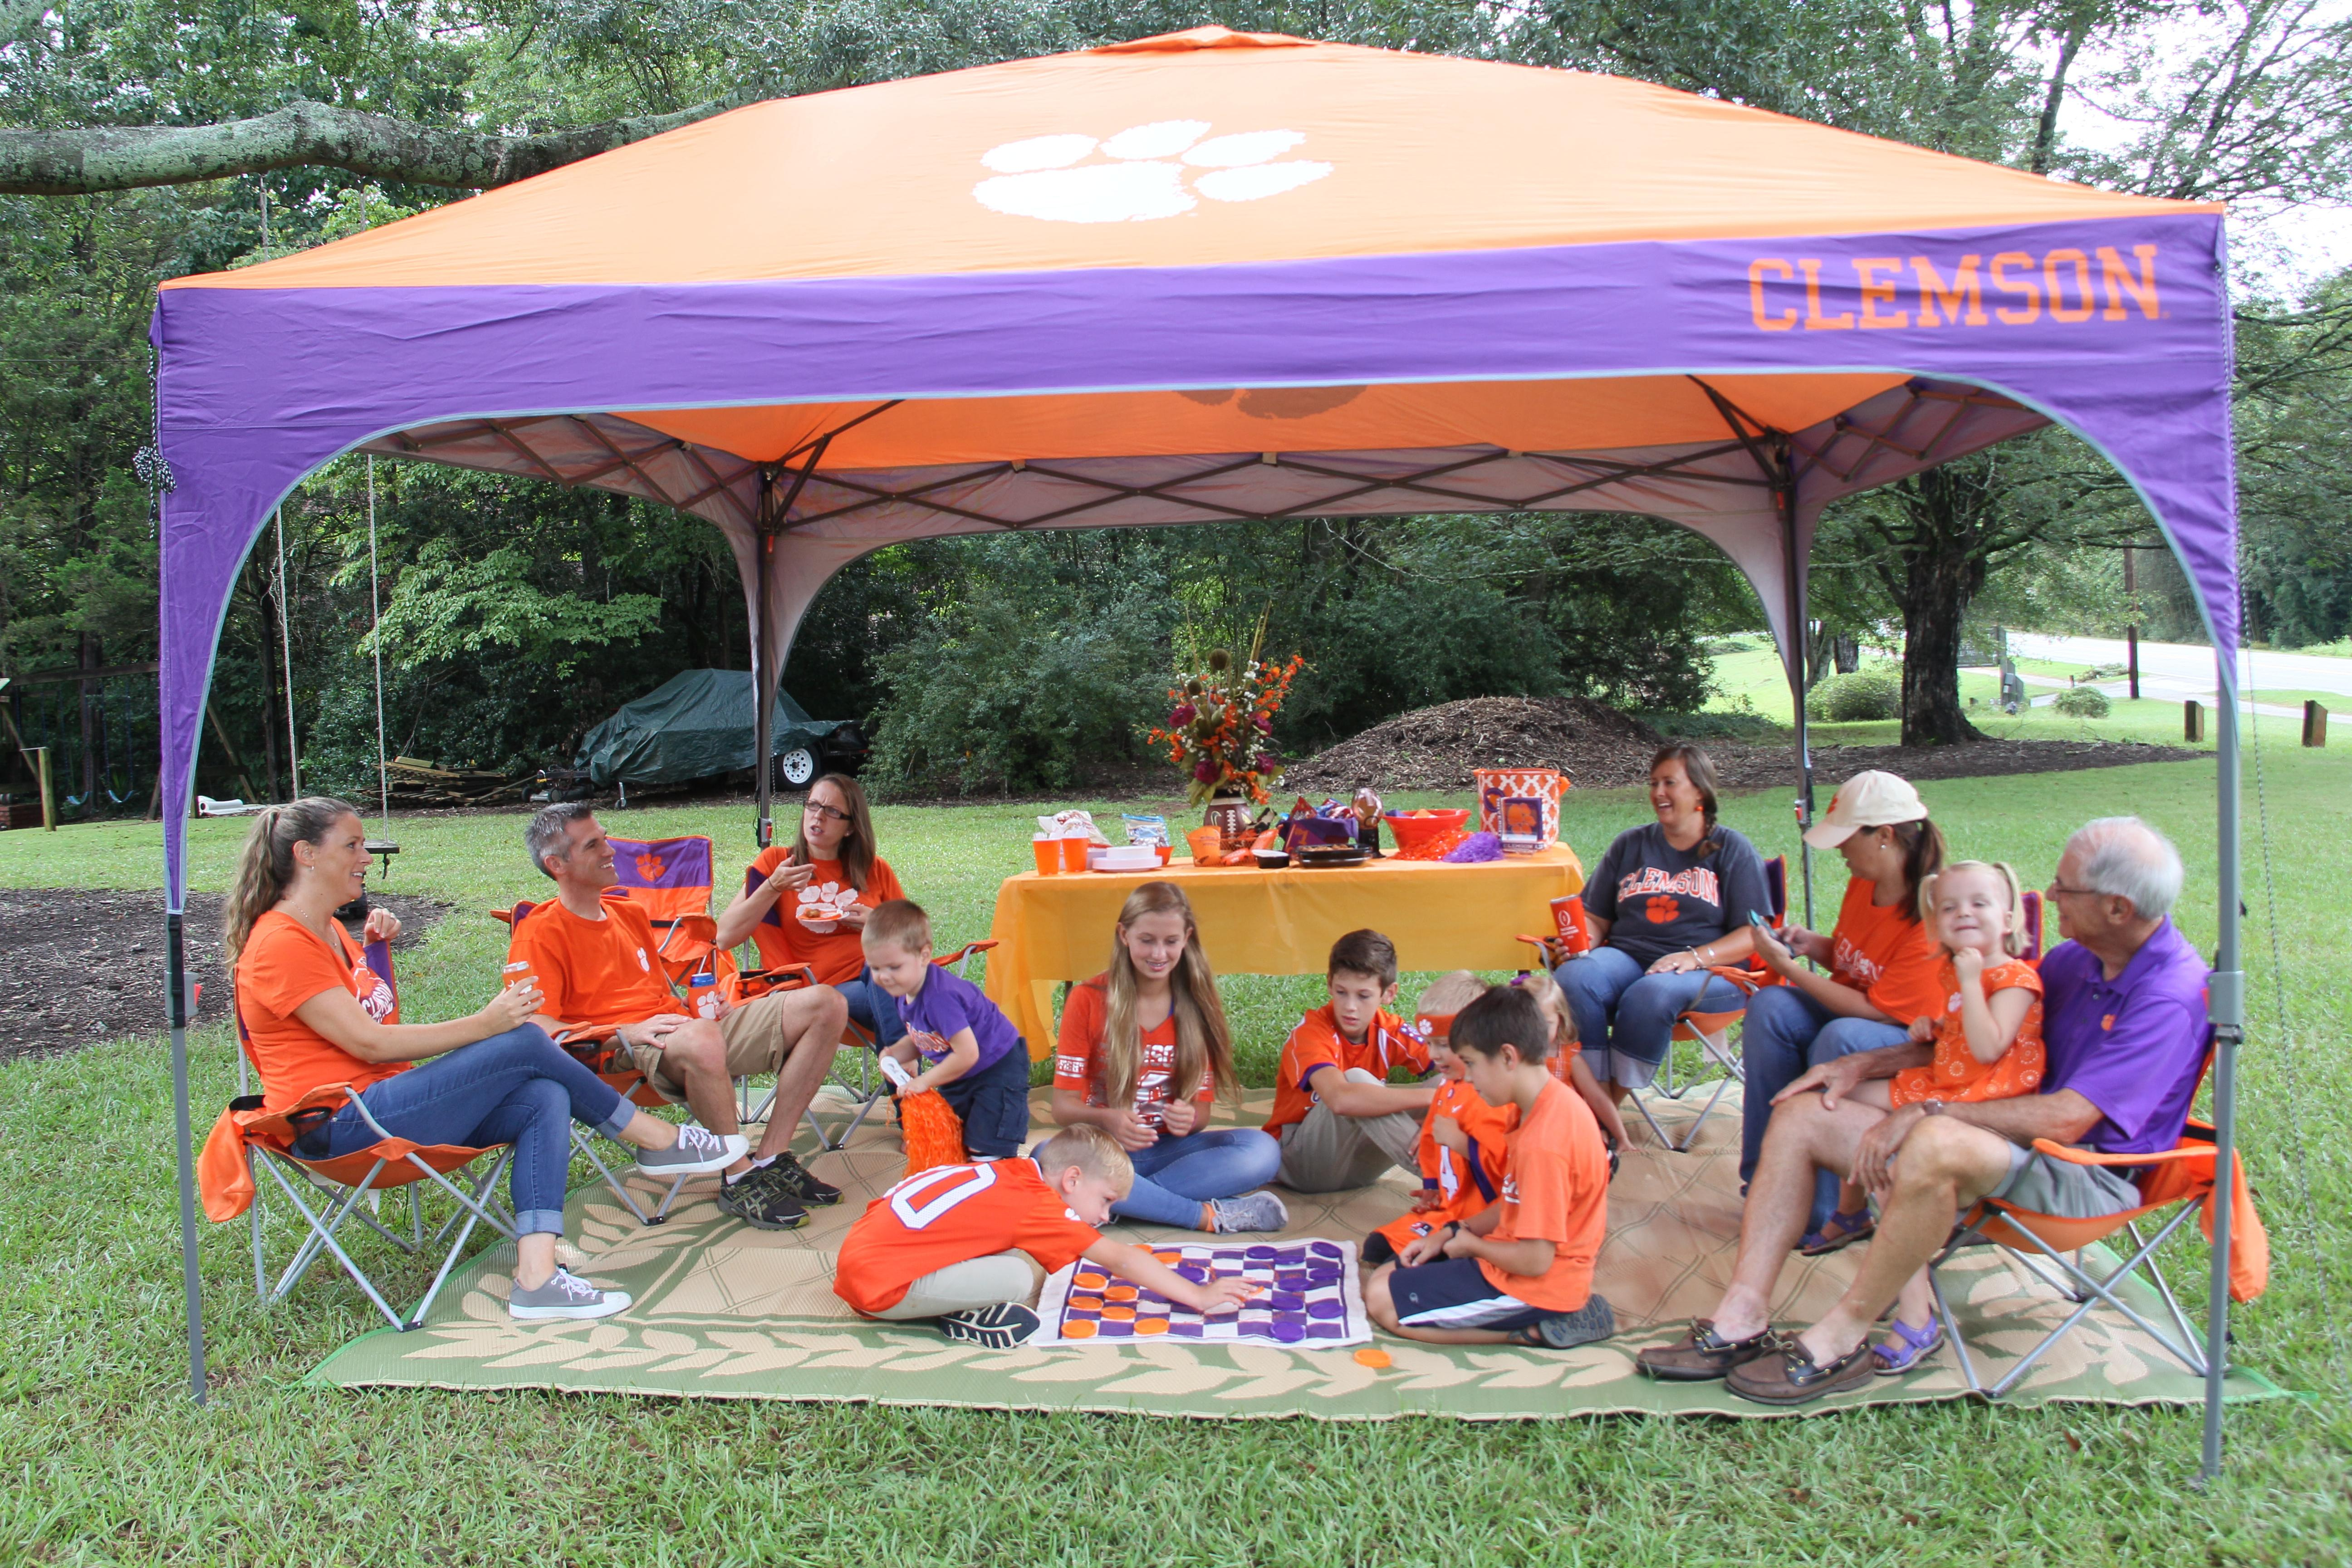 Clemson fans Laura King Aaron King Mariah Magagnotti Jessica Geldard Erica Walters and u201cGrandpau201d Jim Juras gather with their children Seth King ... & How to have fun tailgating with your kids